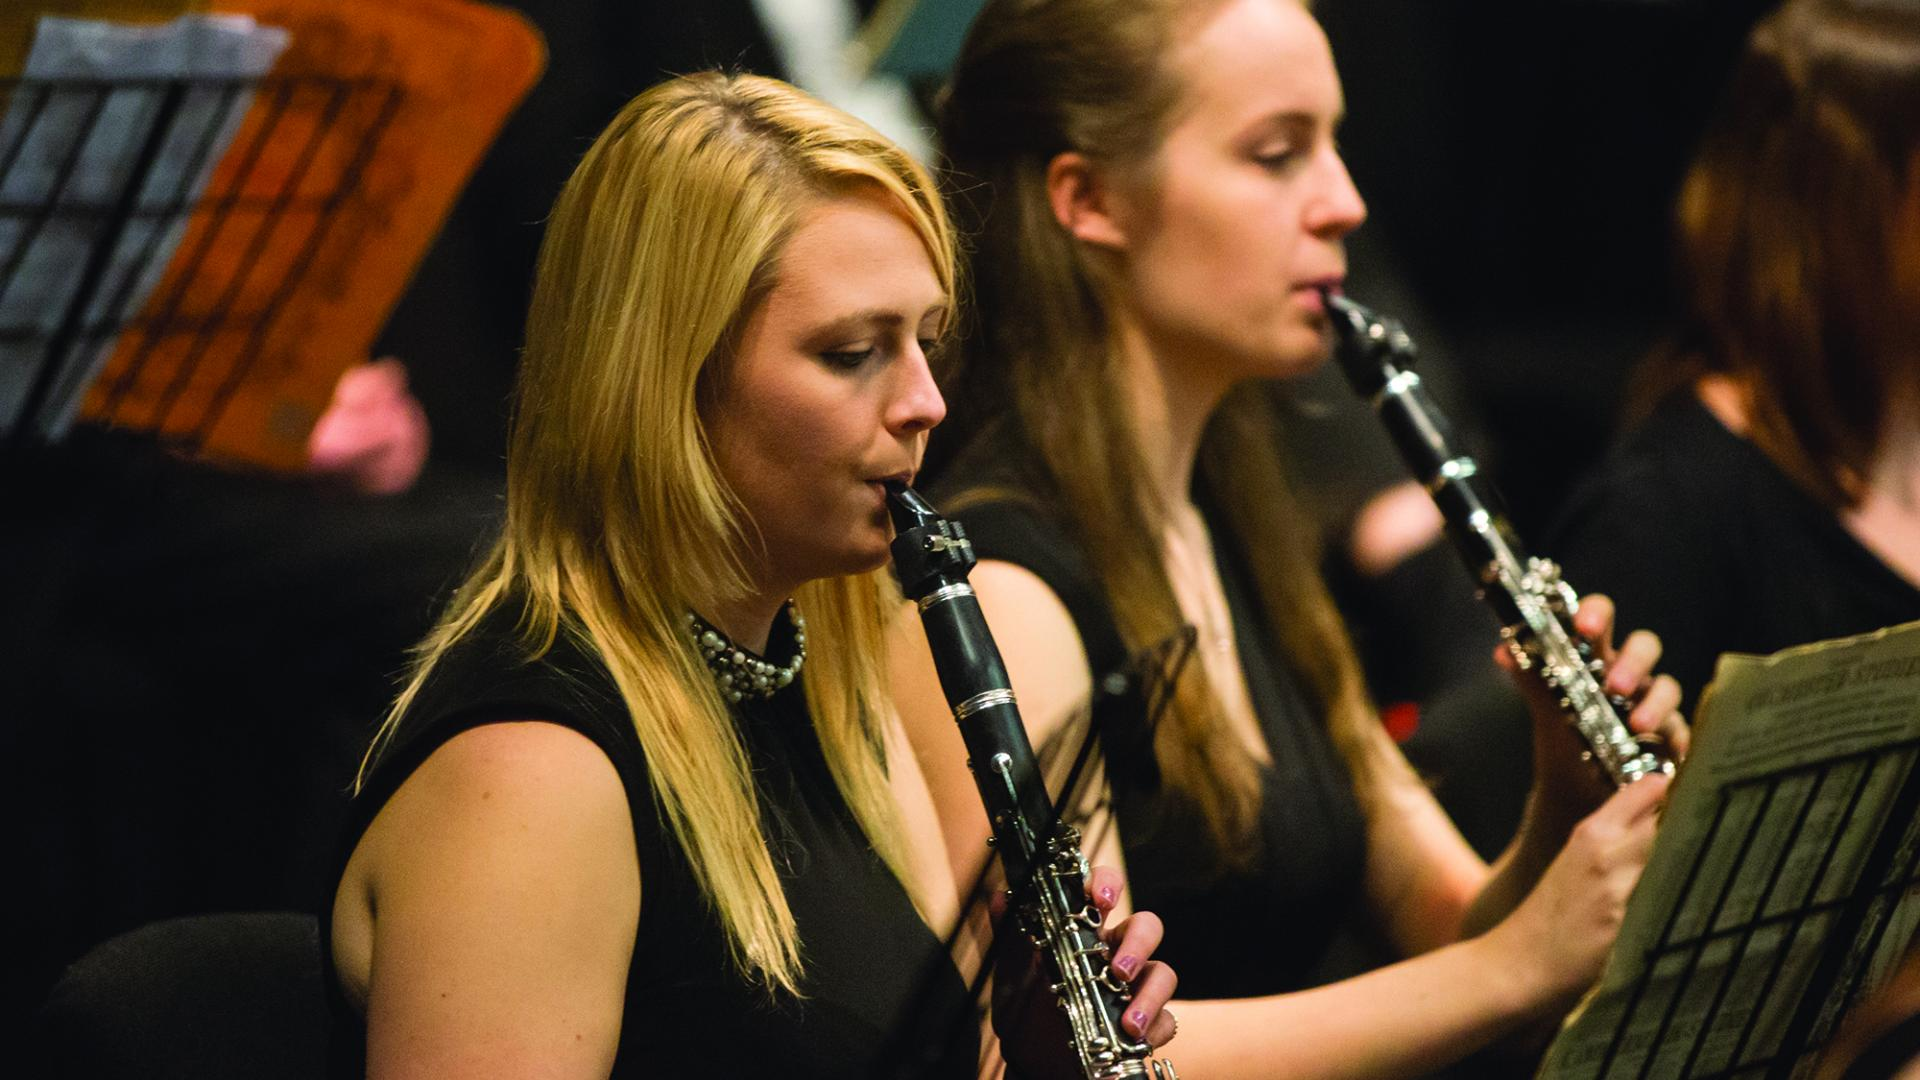 Two students playing clarinet in an orchestra